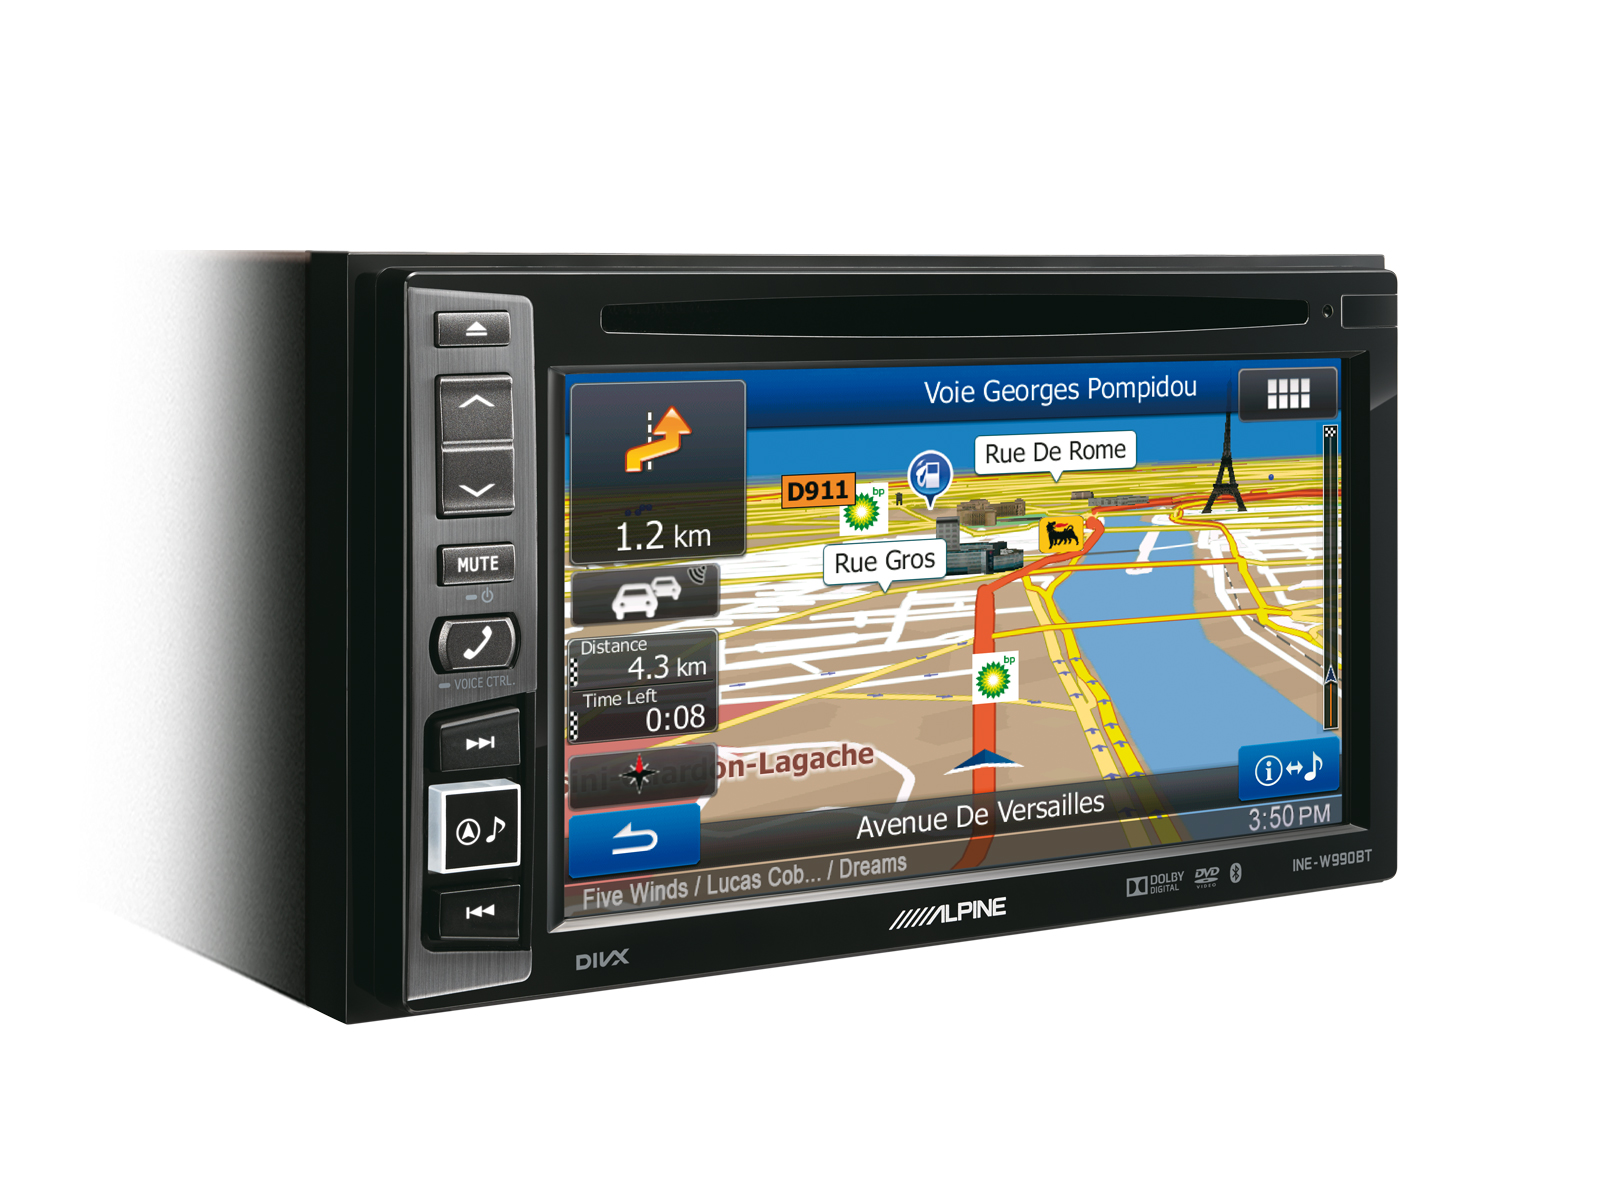 Alpine Ilx 207 as well Product m Pioneer Mvh 8200bt p 25986 furthermore Product m Panasonic Cq C1021n p 20926 further Uk in addition Product m Jvc Kd G162 p 25858. on alpine car stereo with bluetooth